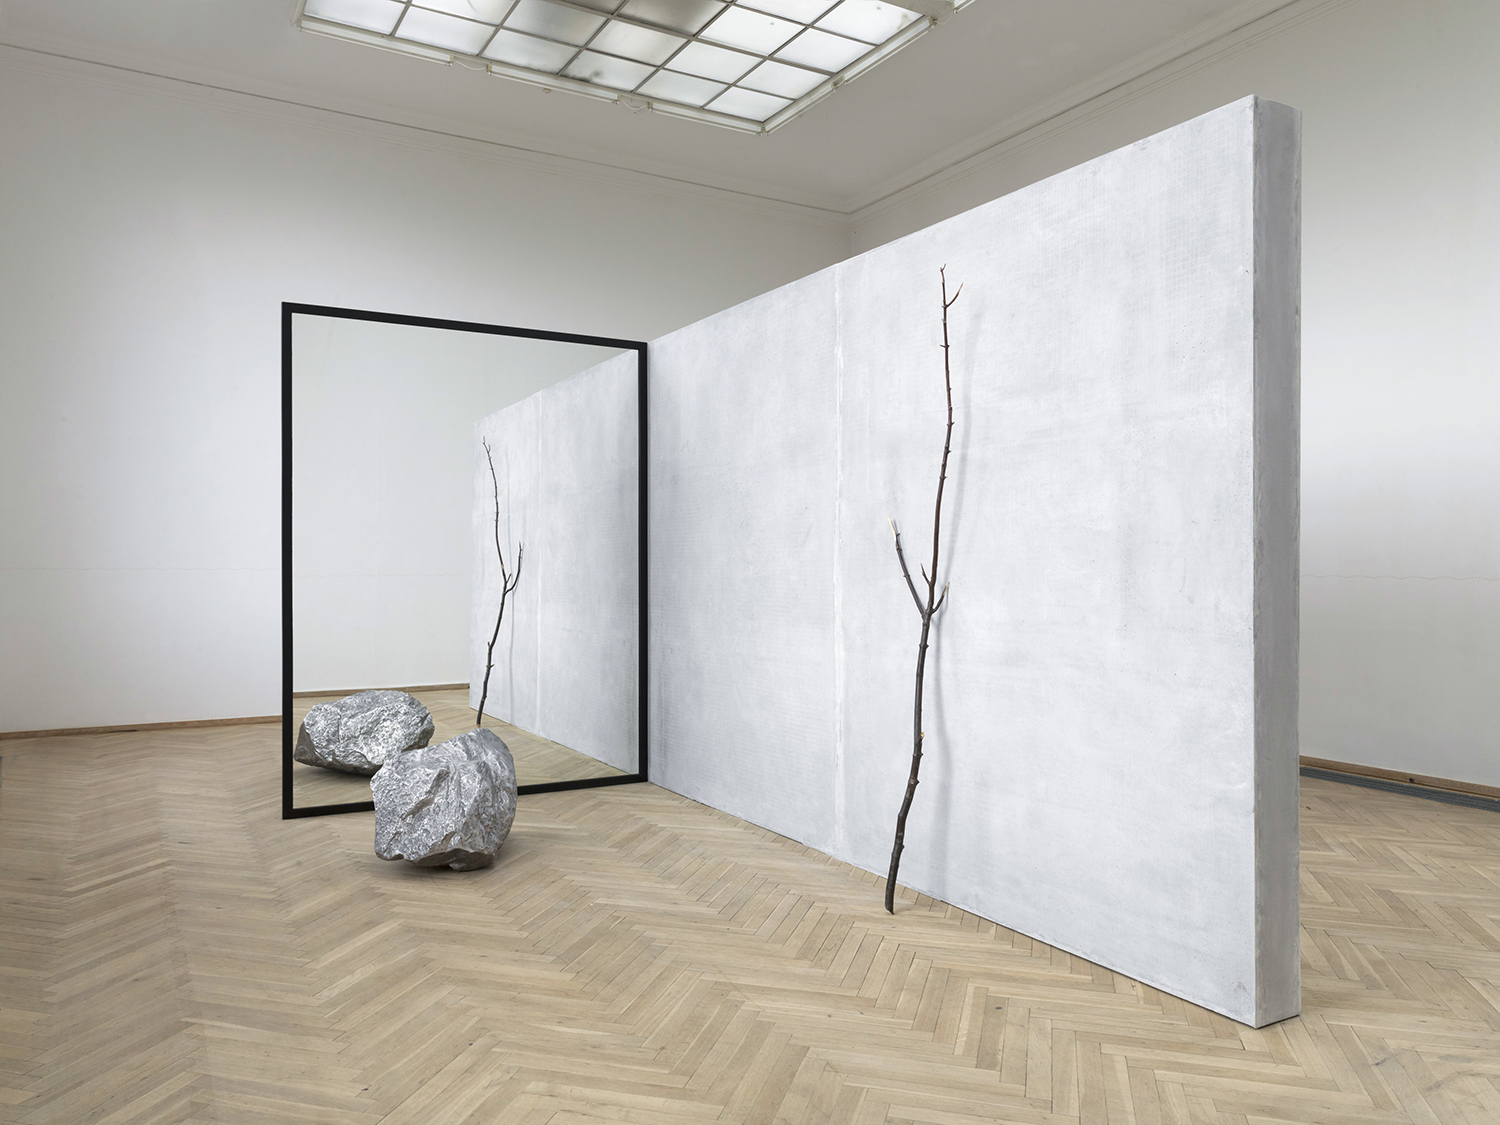 Alicja Kwade, 'Out of Ousia' (2016), 'Parralelwelt (Ast/AntiAst)' (2018). Kunsthal Charlottenborg 2018. Foto: Roman März. Courtesy the artist, KÖNIG GALERIE, 303 GALLERY, kamel mennour. Collection of National Gallery of Australia.